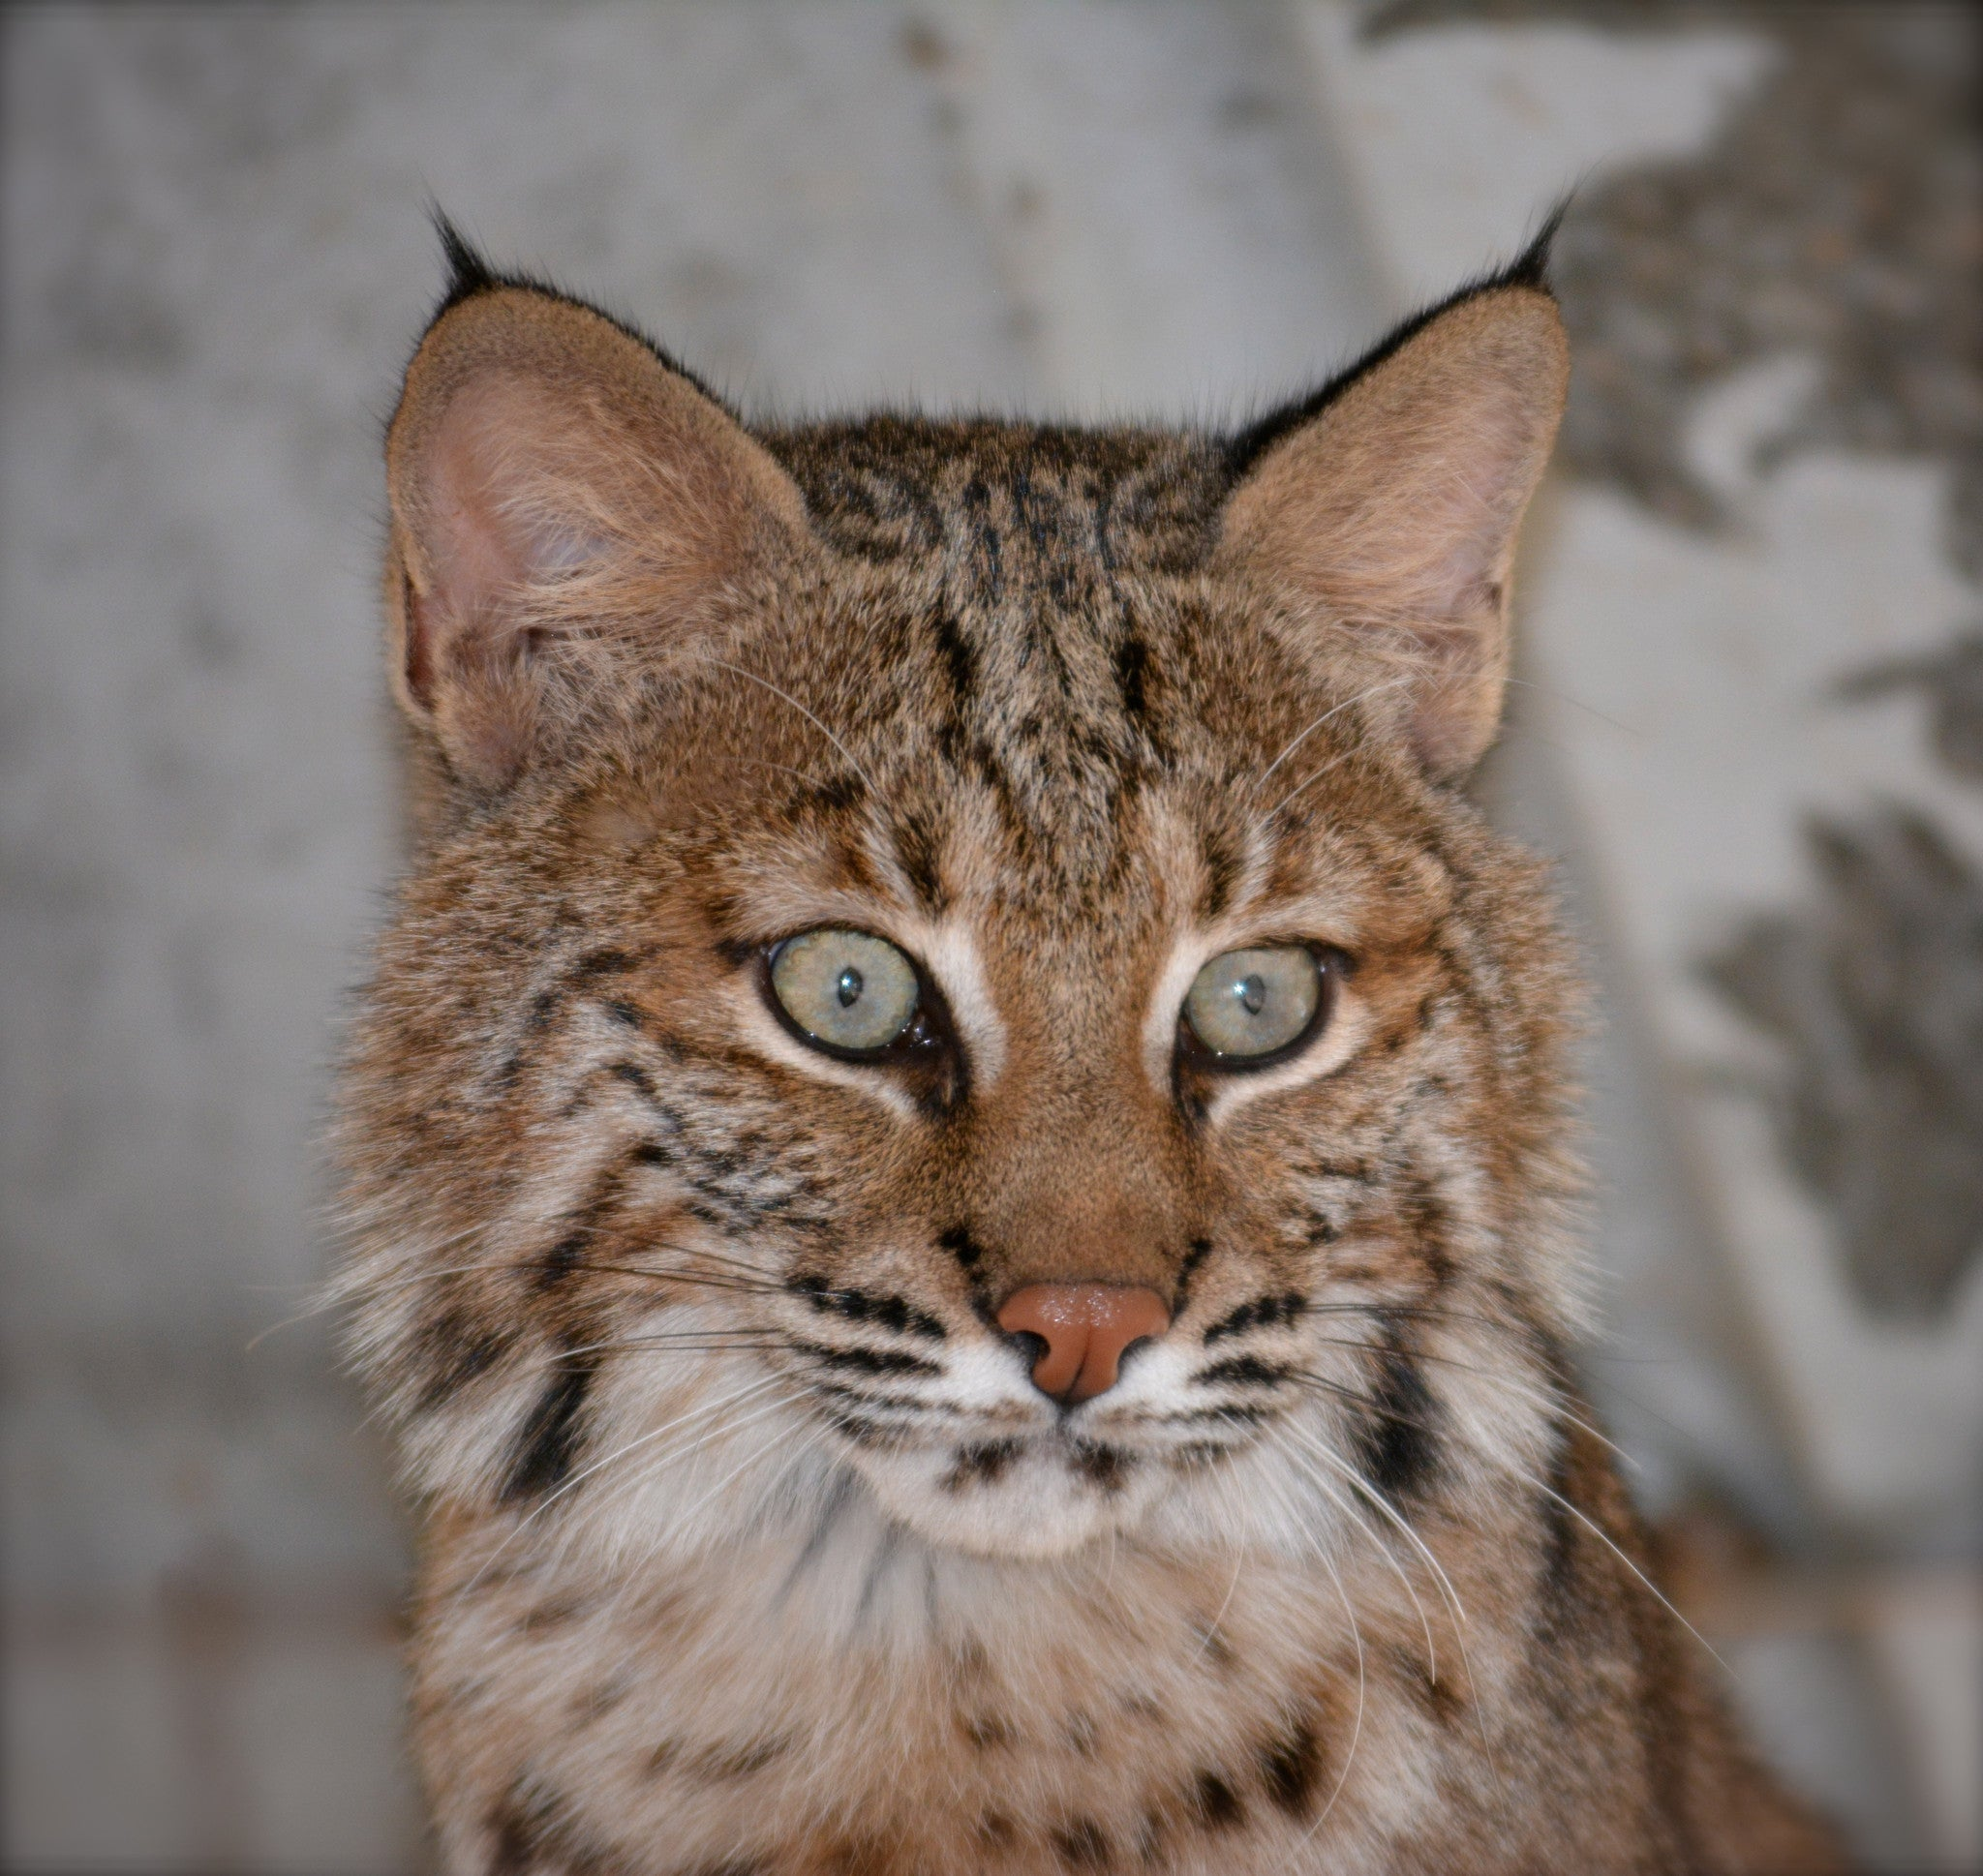 SPONSOR BABY BOB THE BOBCAT FOR A DAY OR WEEK